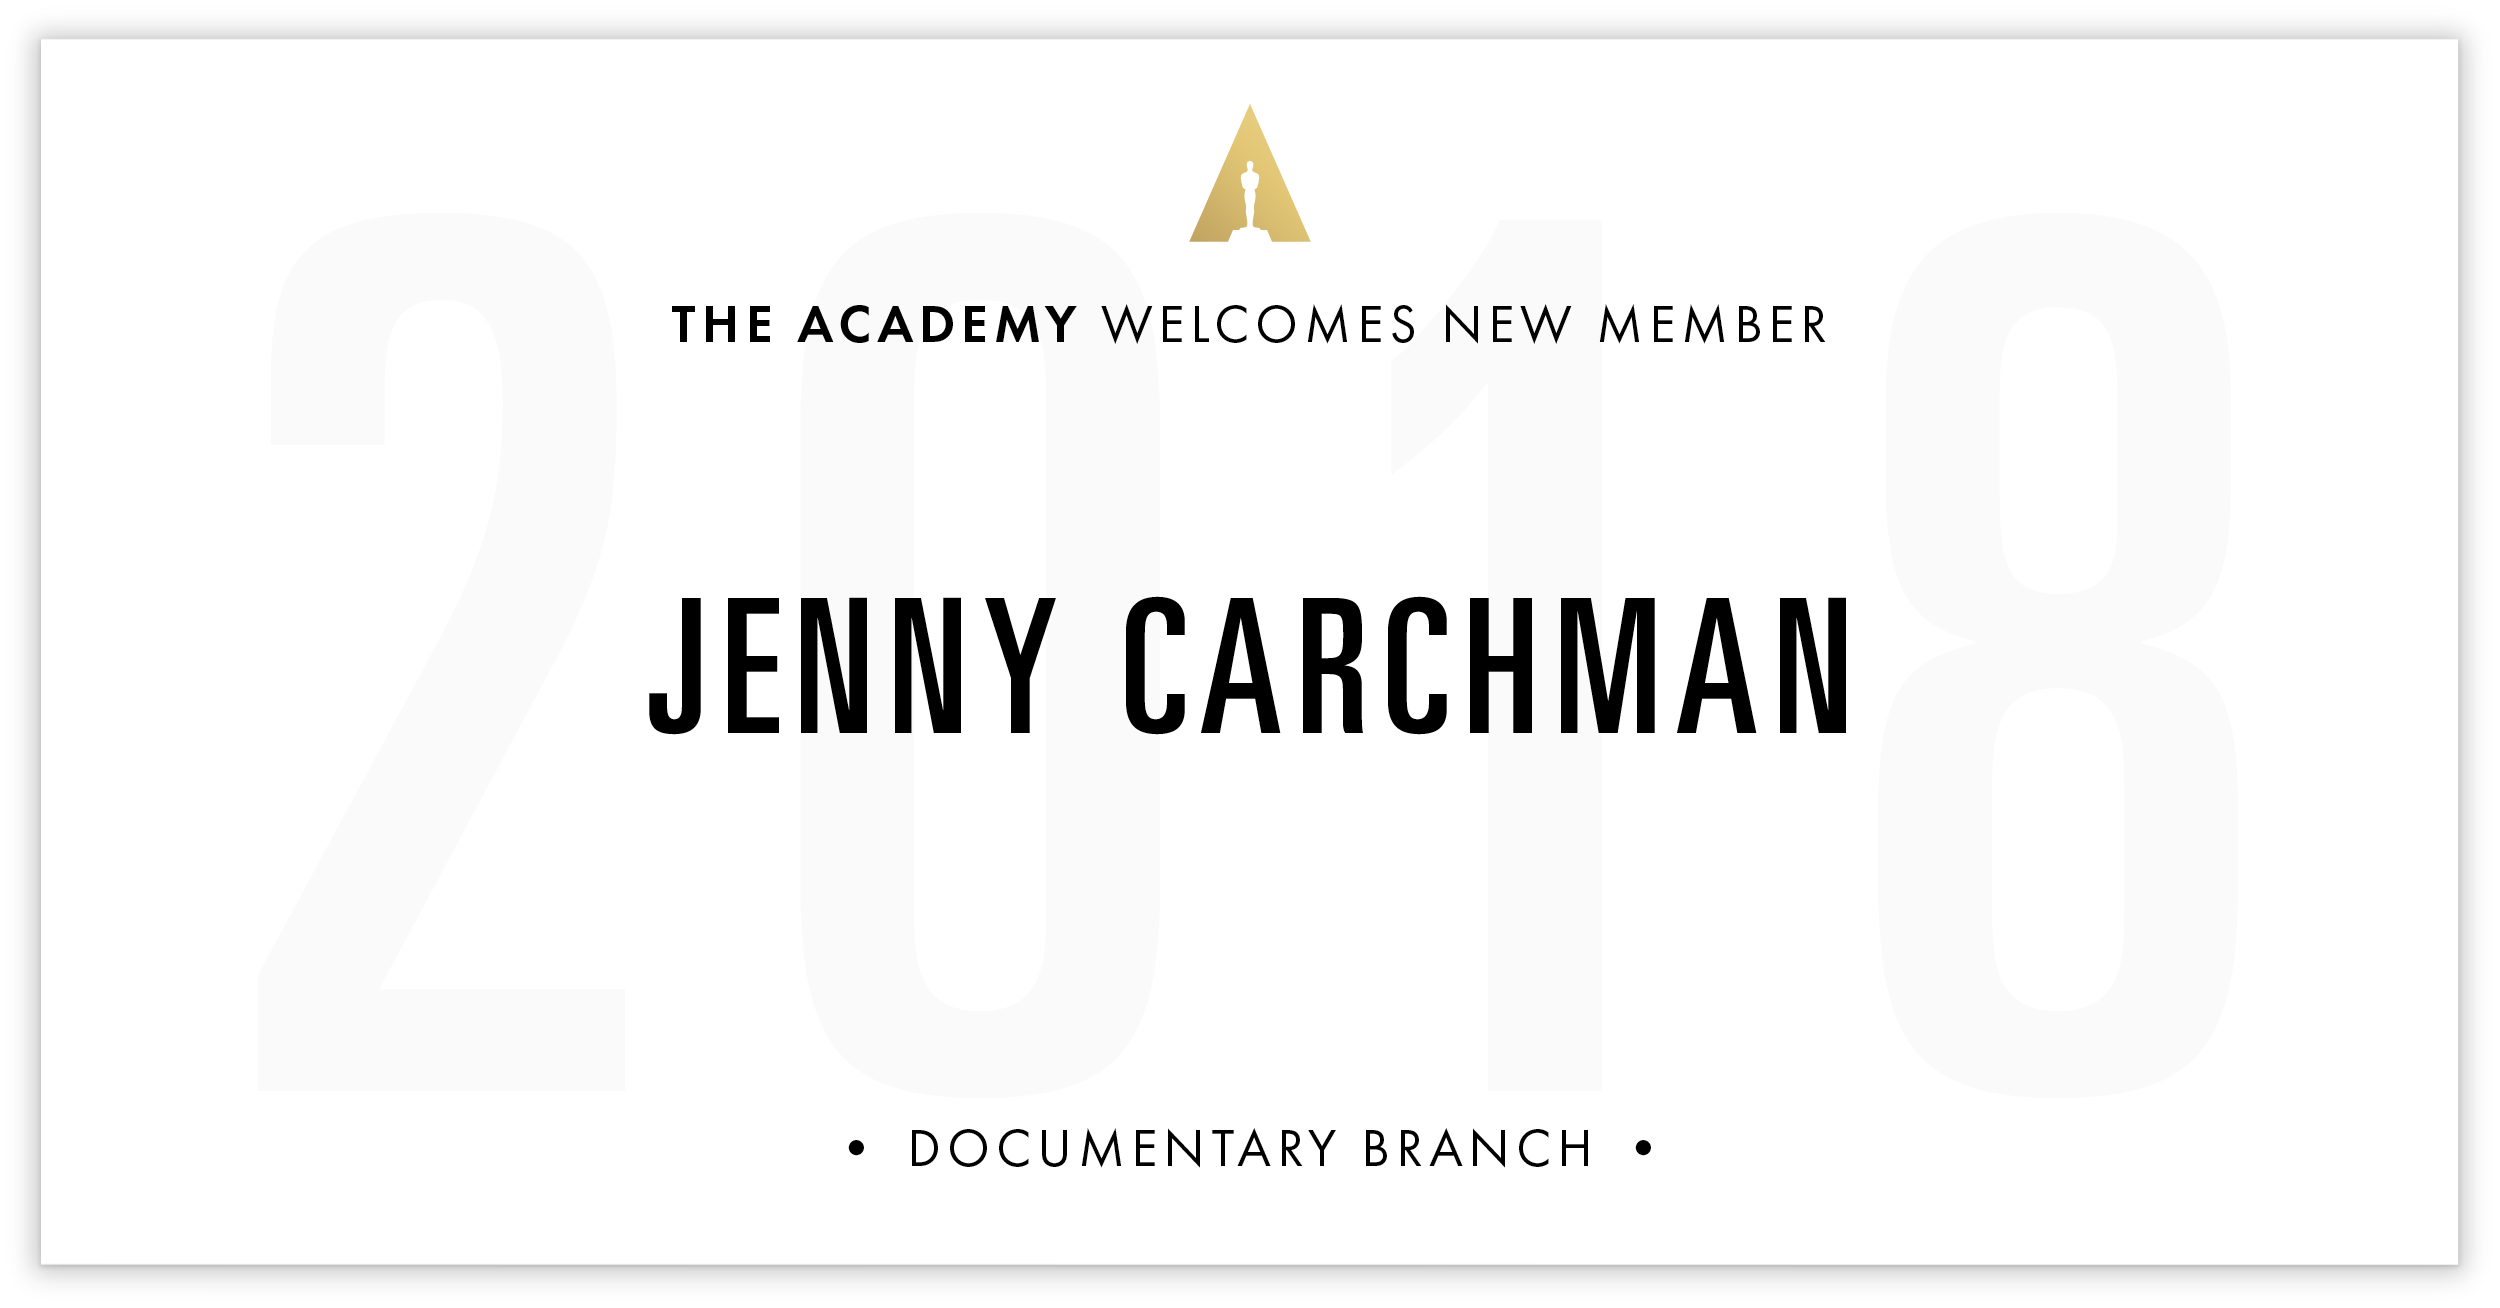 Jenny Carchman is invited!